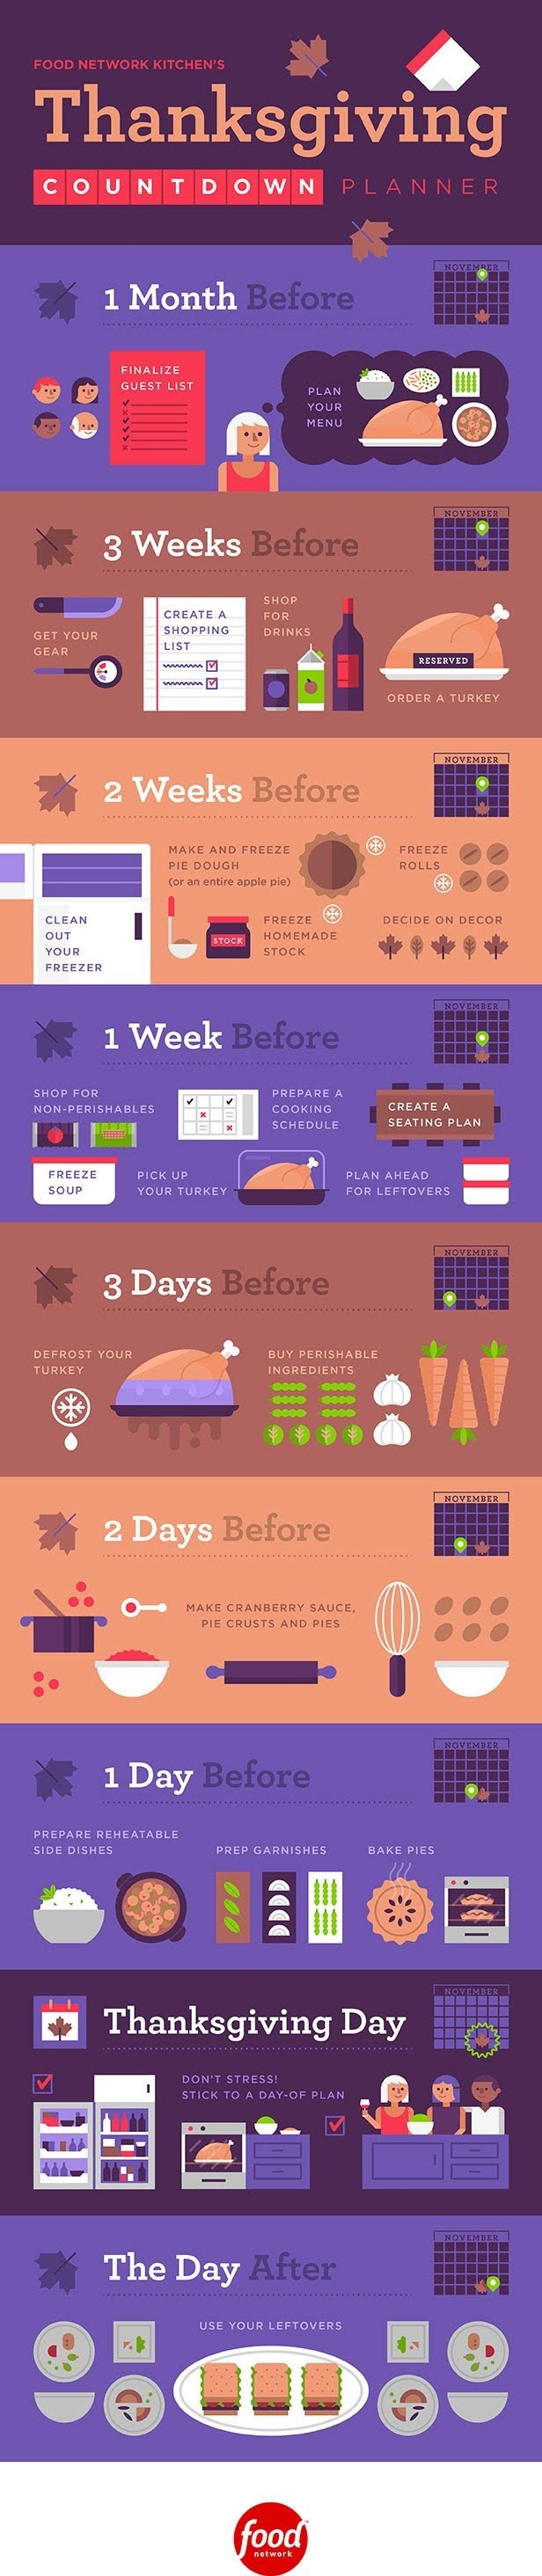 Guide To Thanksgiving Countdown Planner #infographic